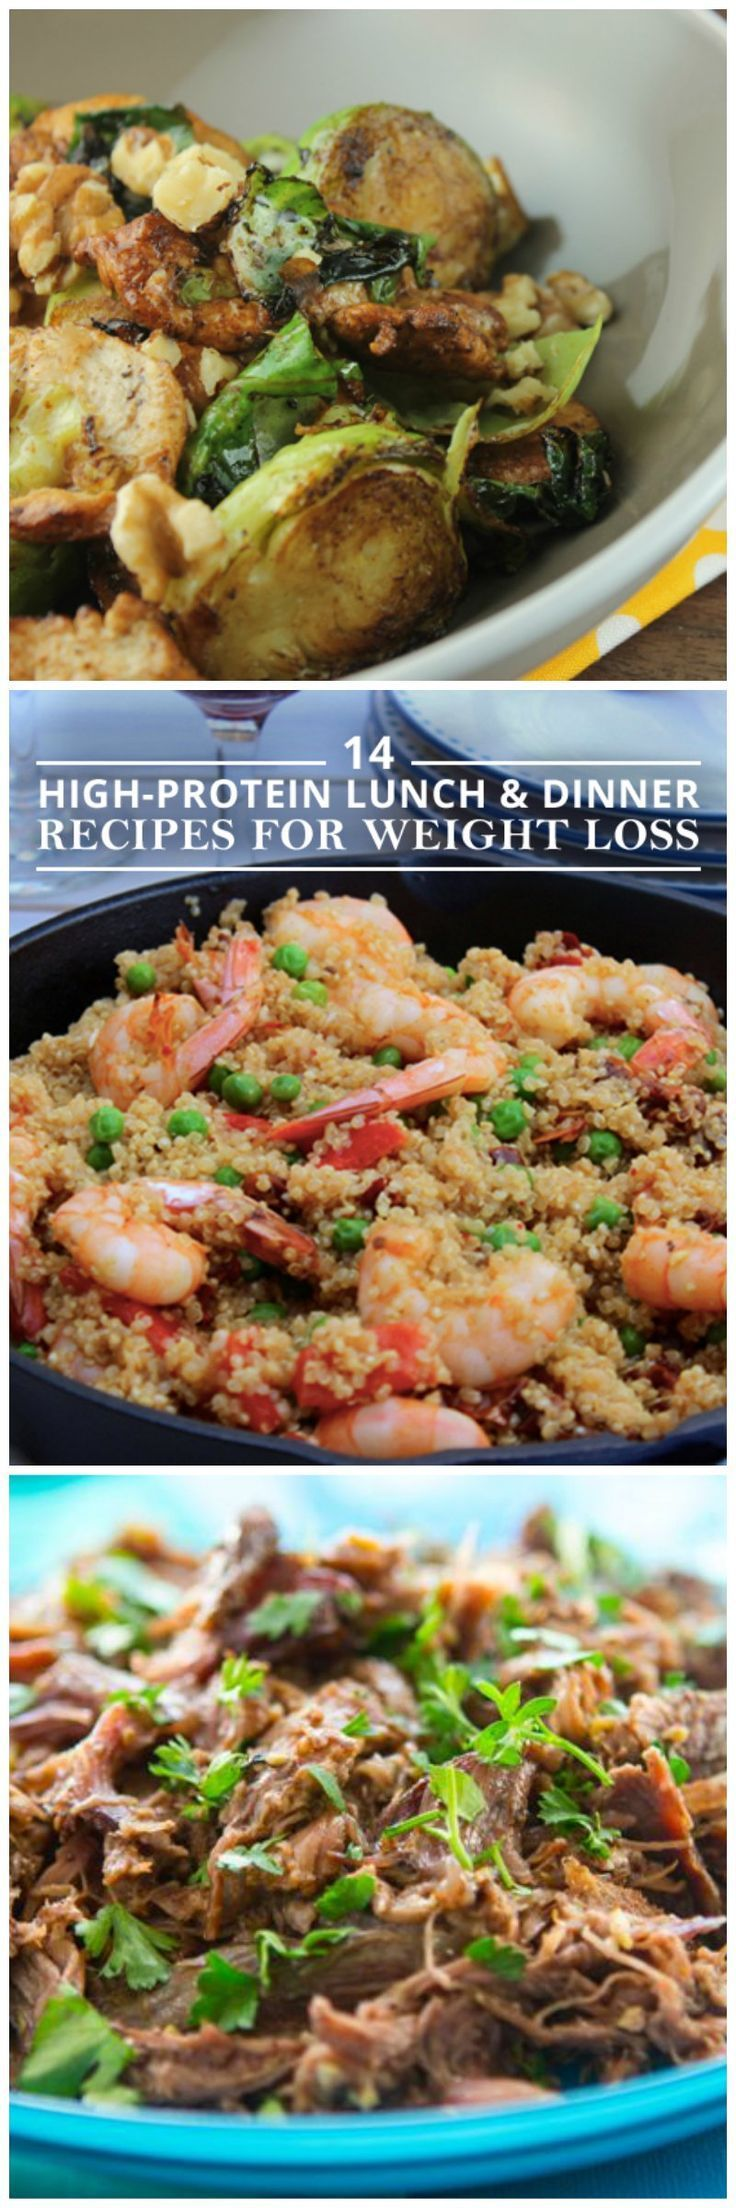 14 High-Protein Lunch & Dinner Recipes for Weight Loss--these meals will fill you up, and curb cravings.